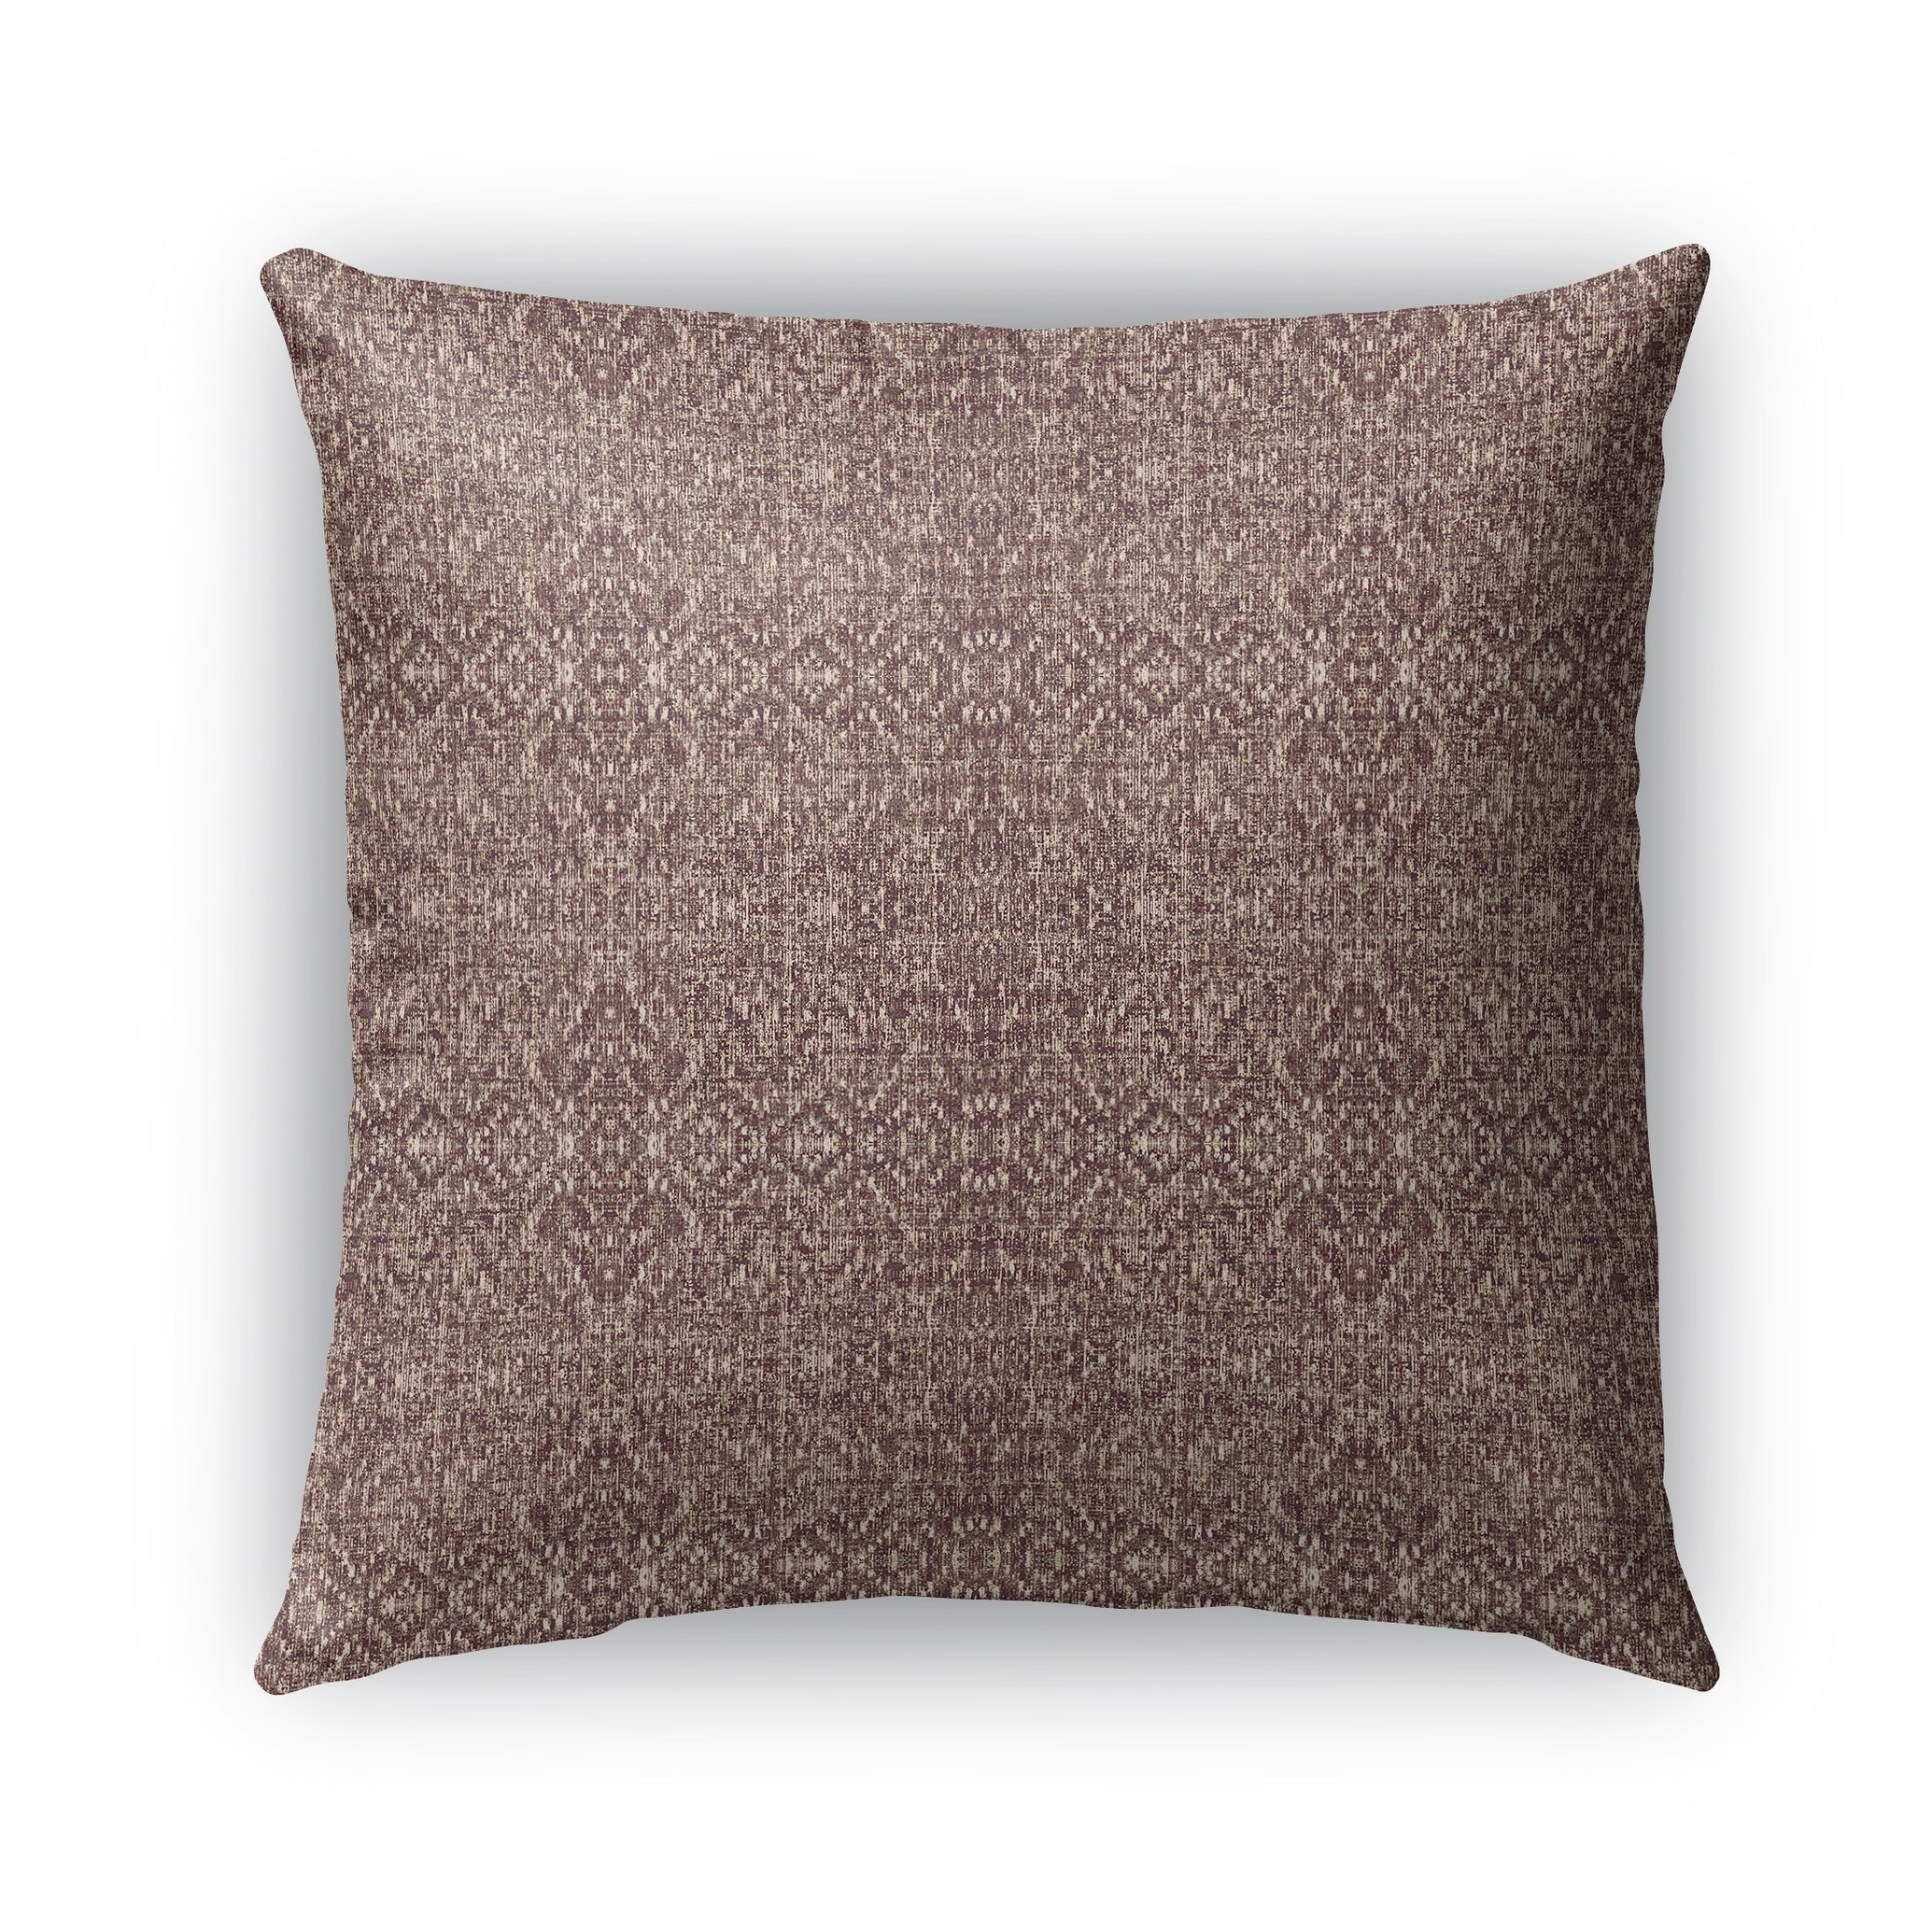 Kavka Designs brown reflect outdoor pillow with insert (18 x 18)